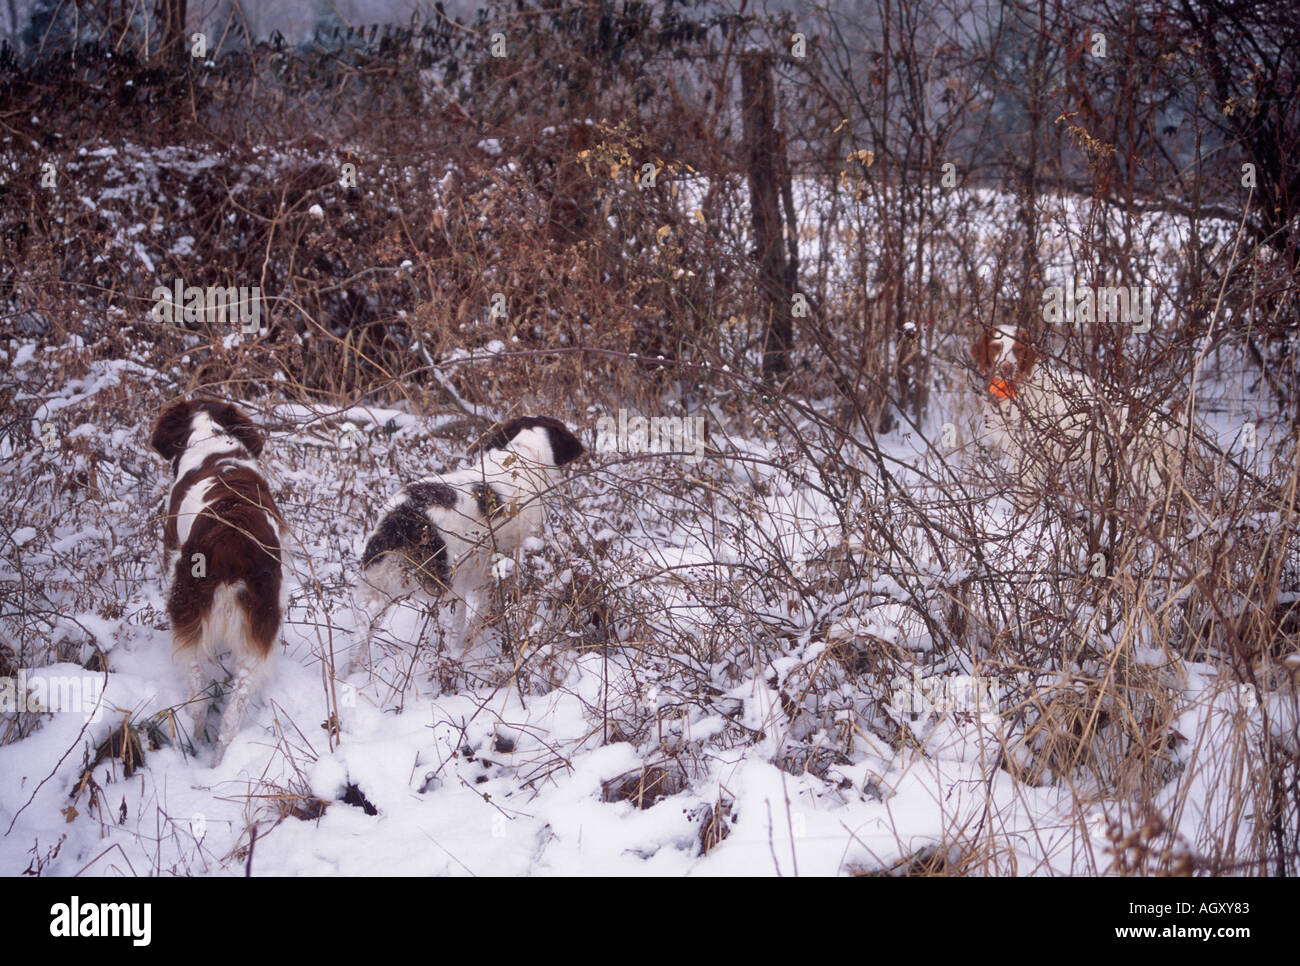 covey of quail stock photos \u0026 covey of quail stock images alamy Quail Template trio of brittanys pointing covey of quail in snow covered fenceline harrison county indiana stock